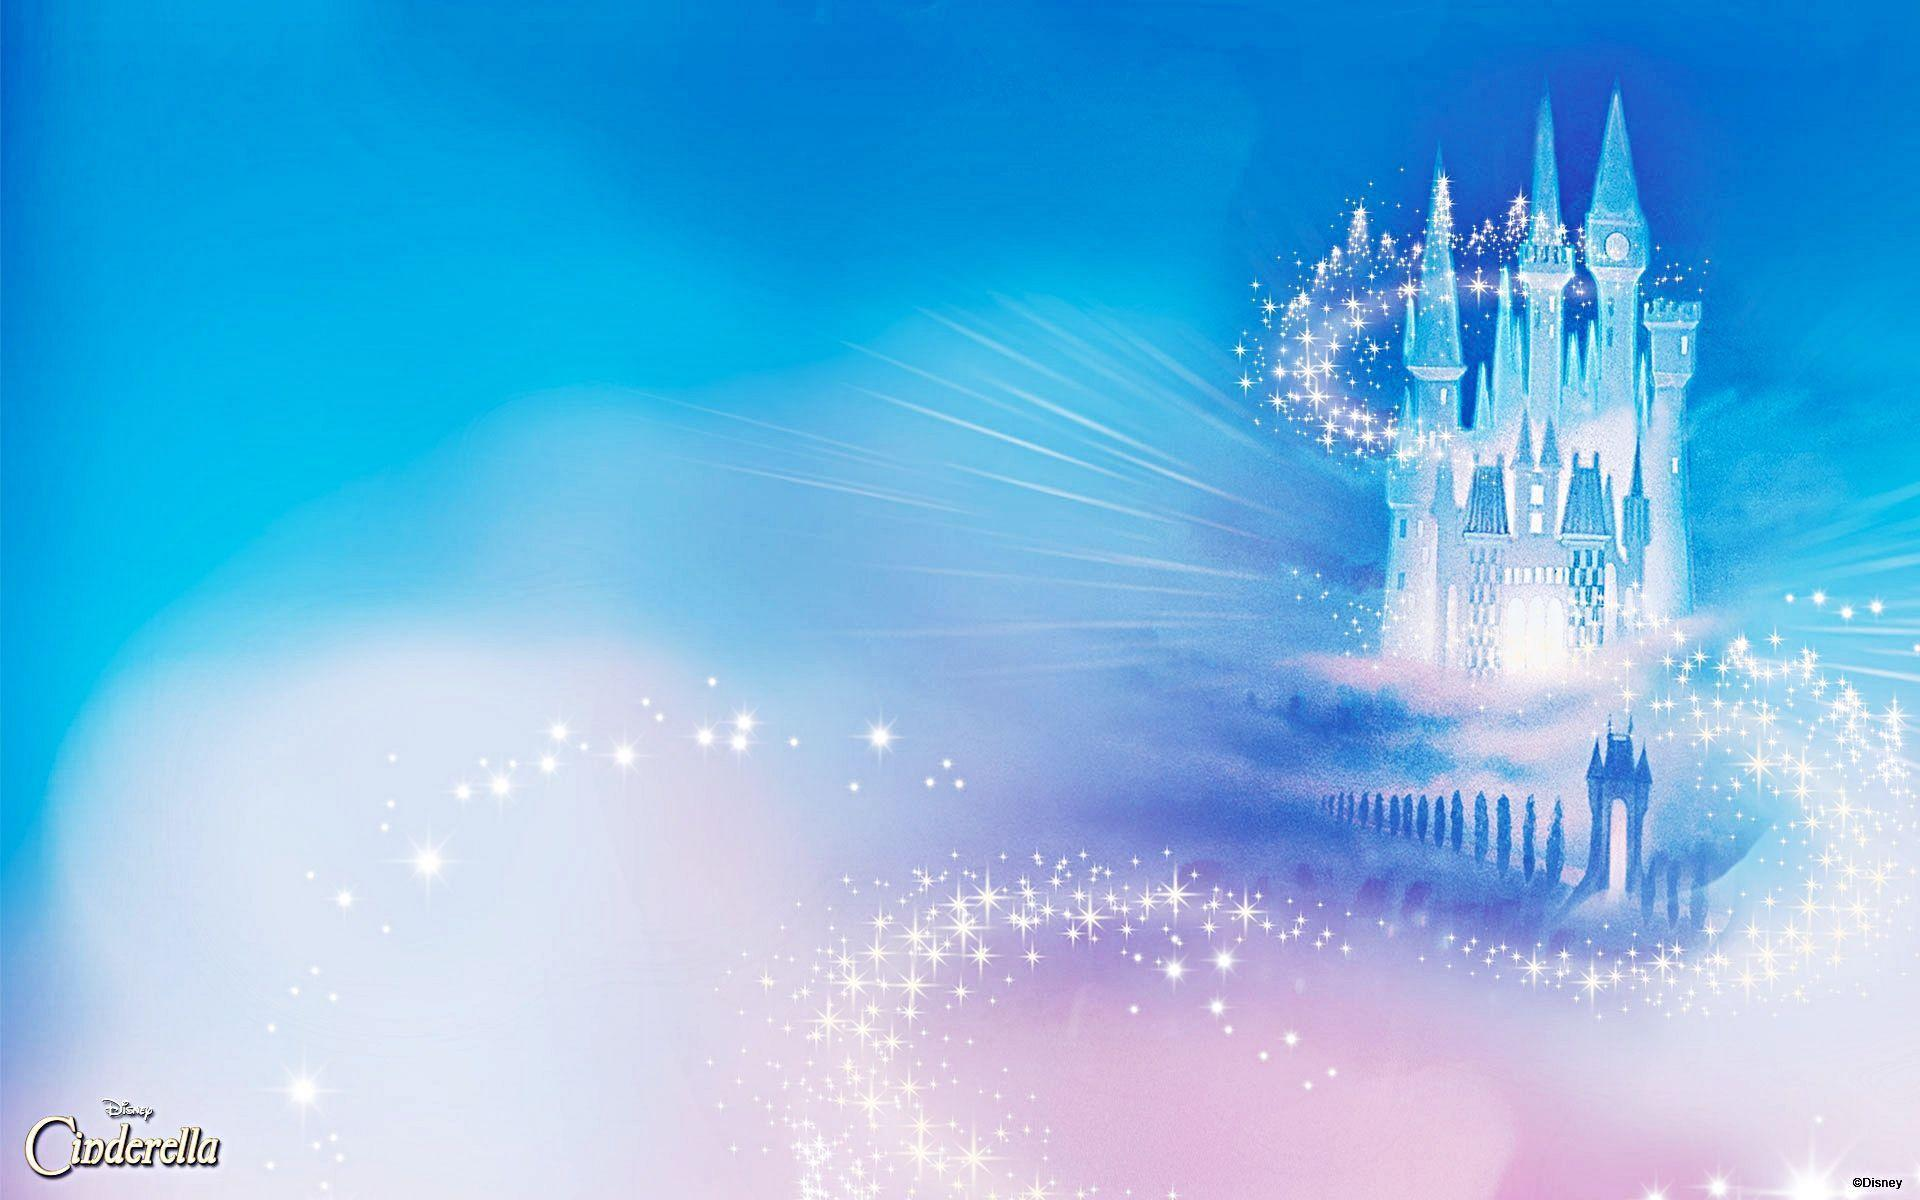 Disney Cinderella Wallpapers